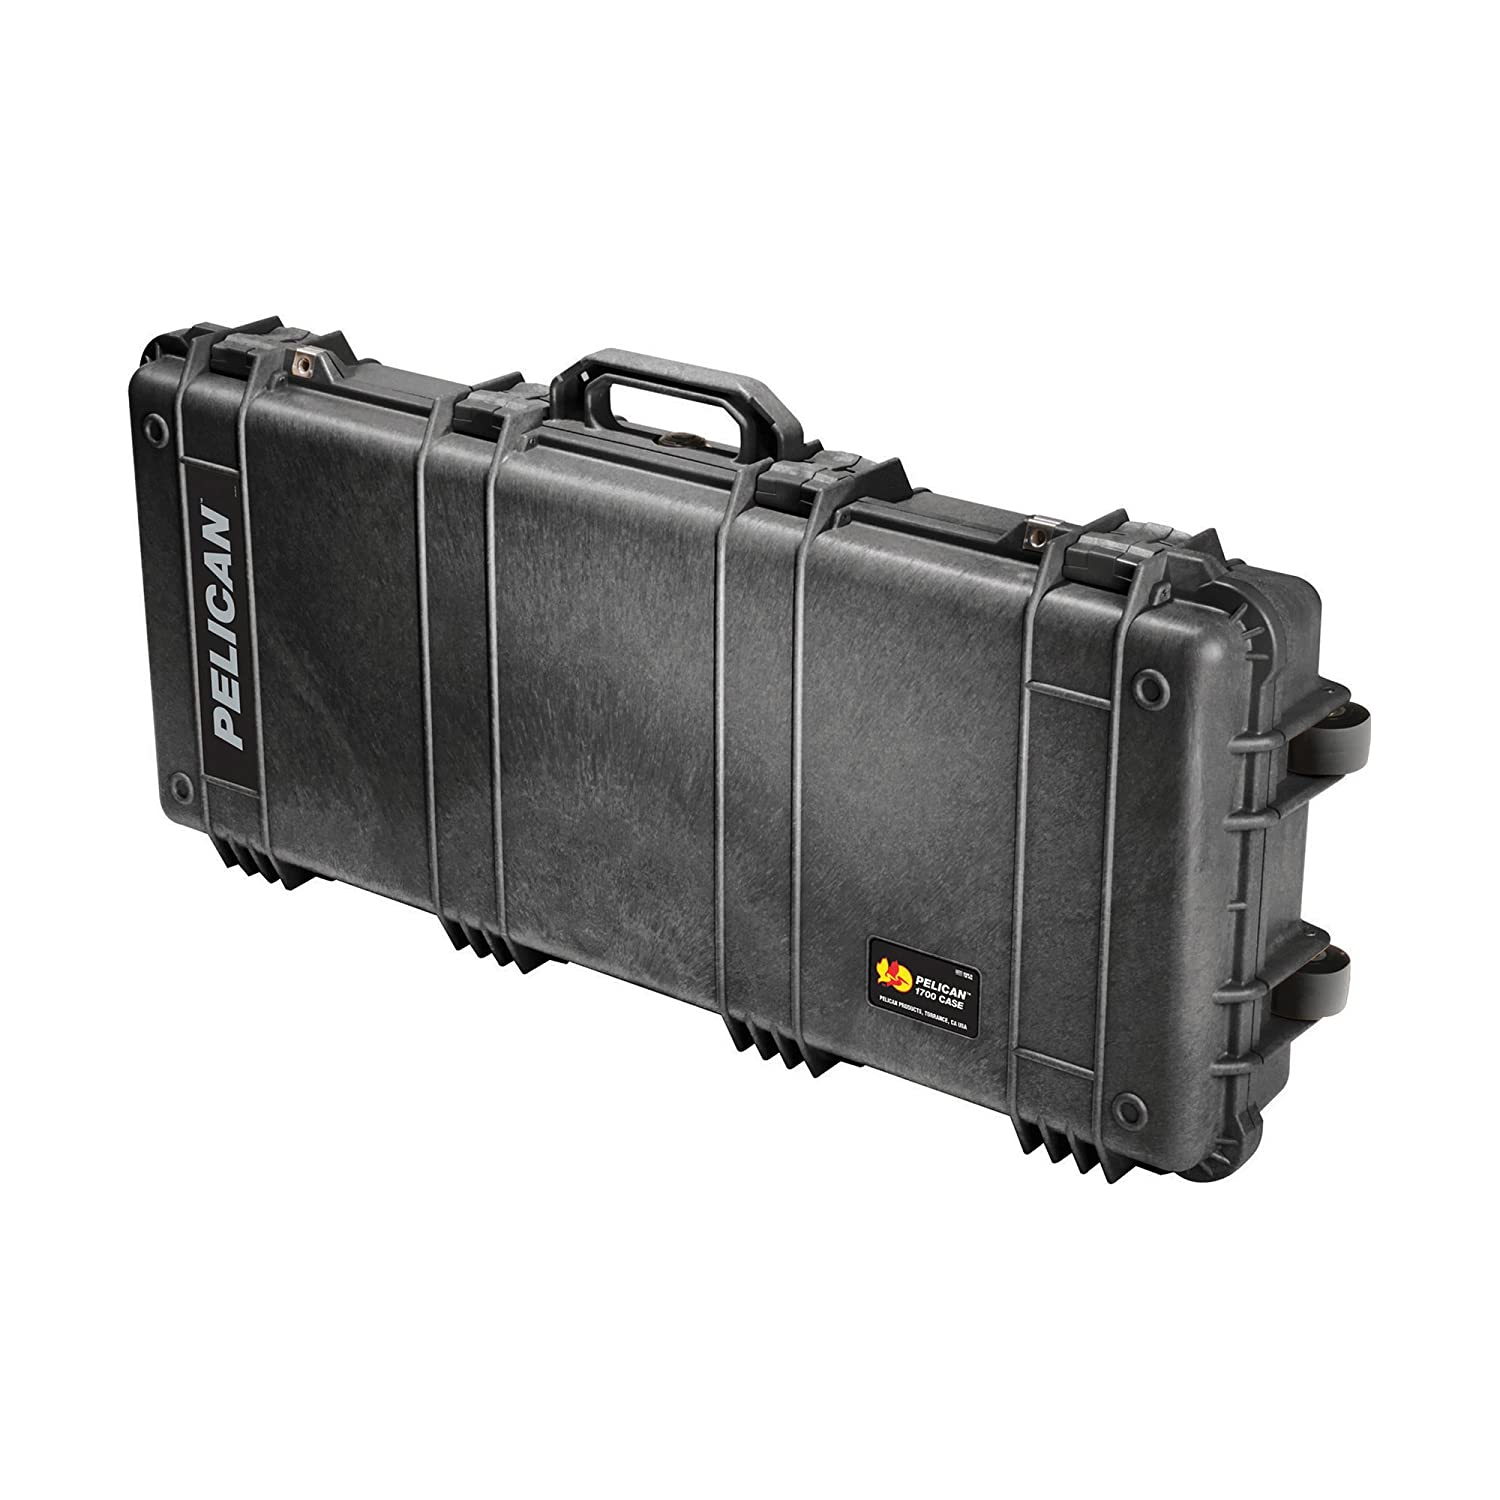 image of Pelican 1700 Rifle Case